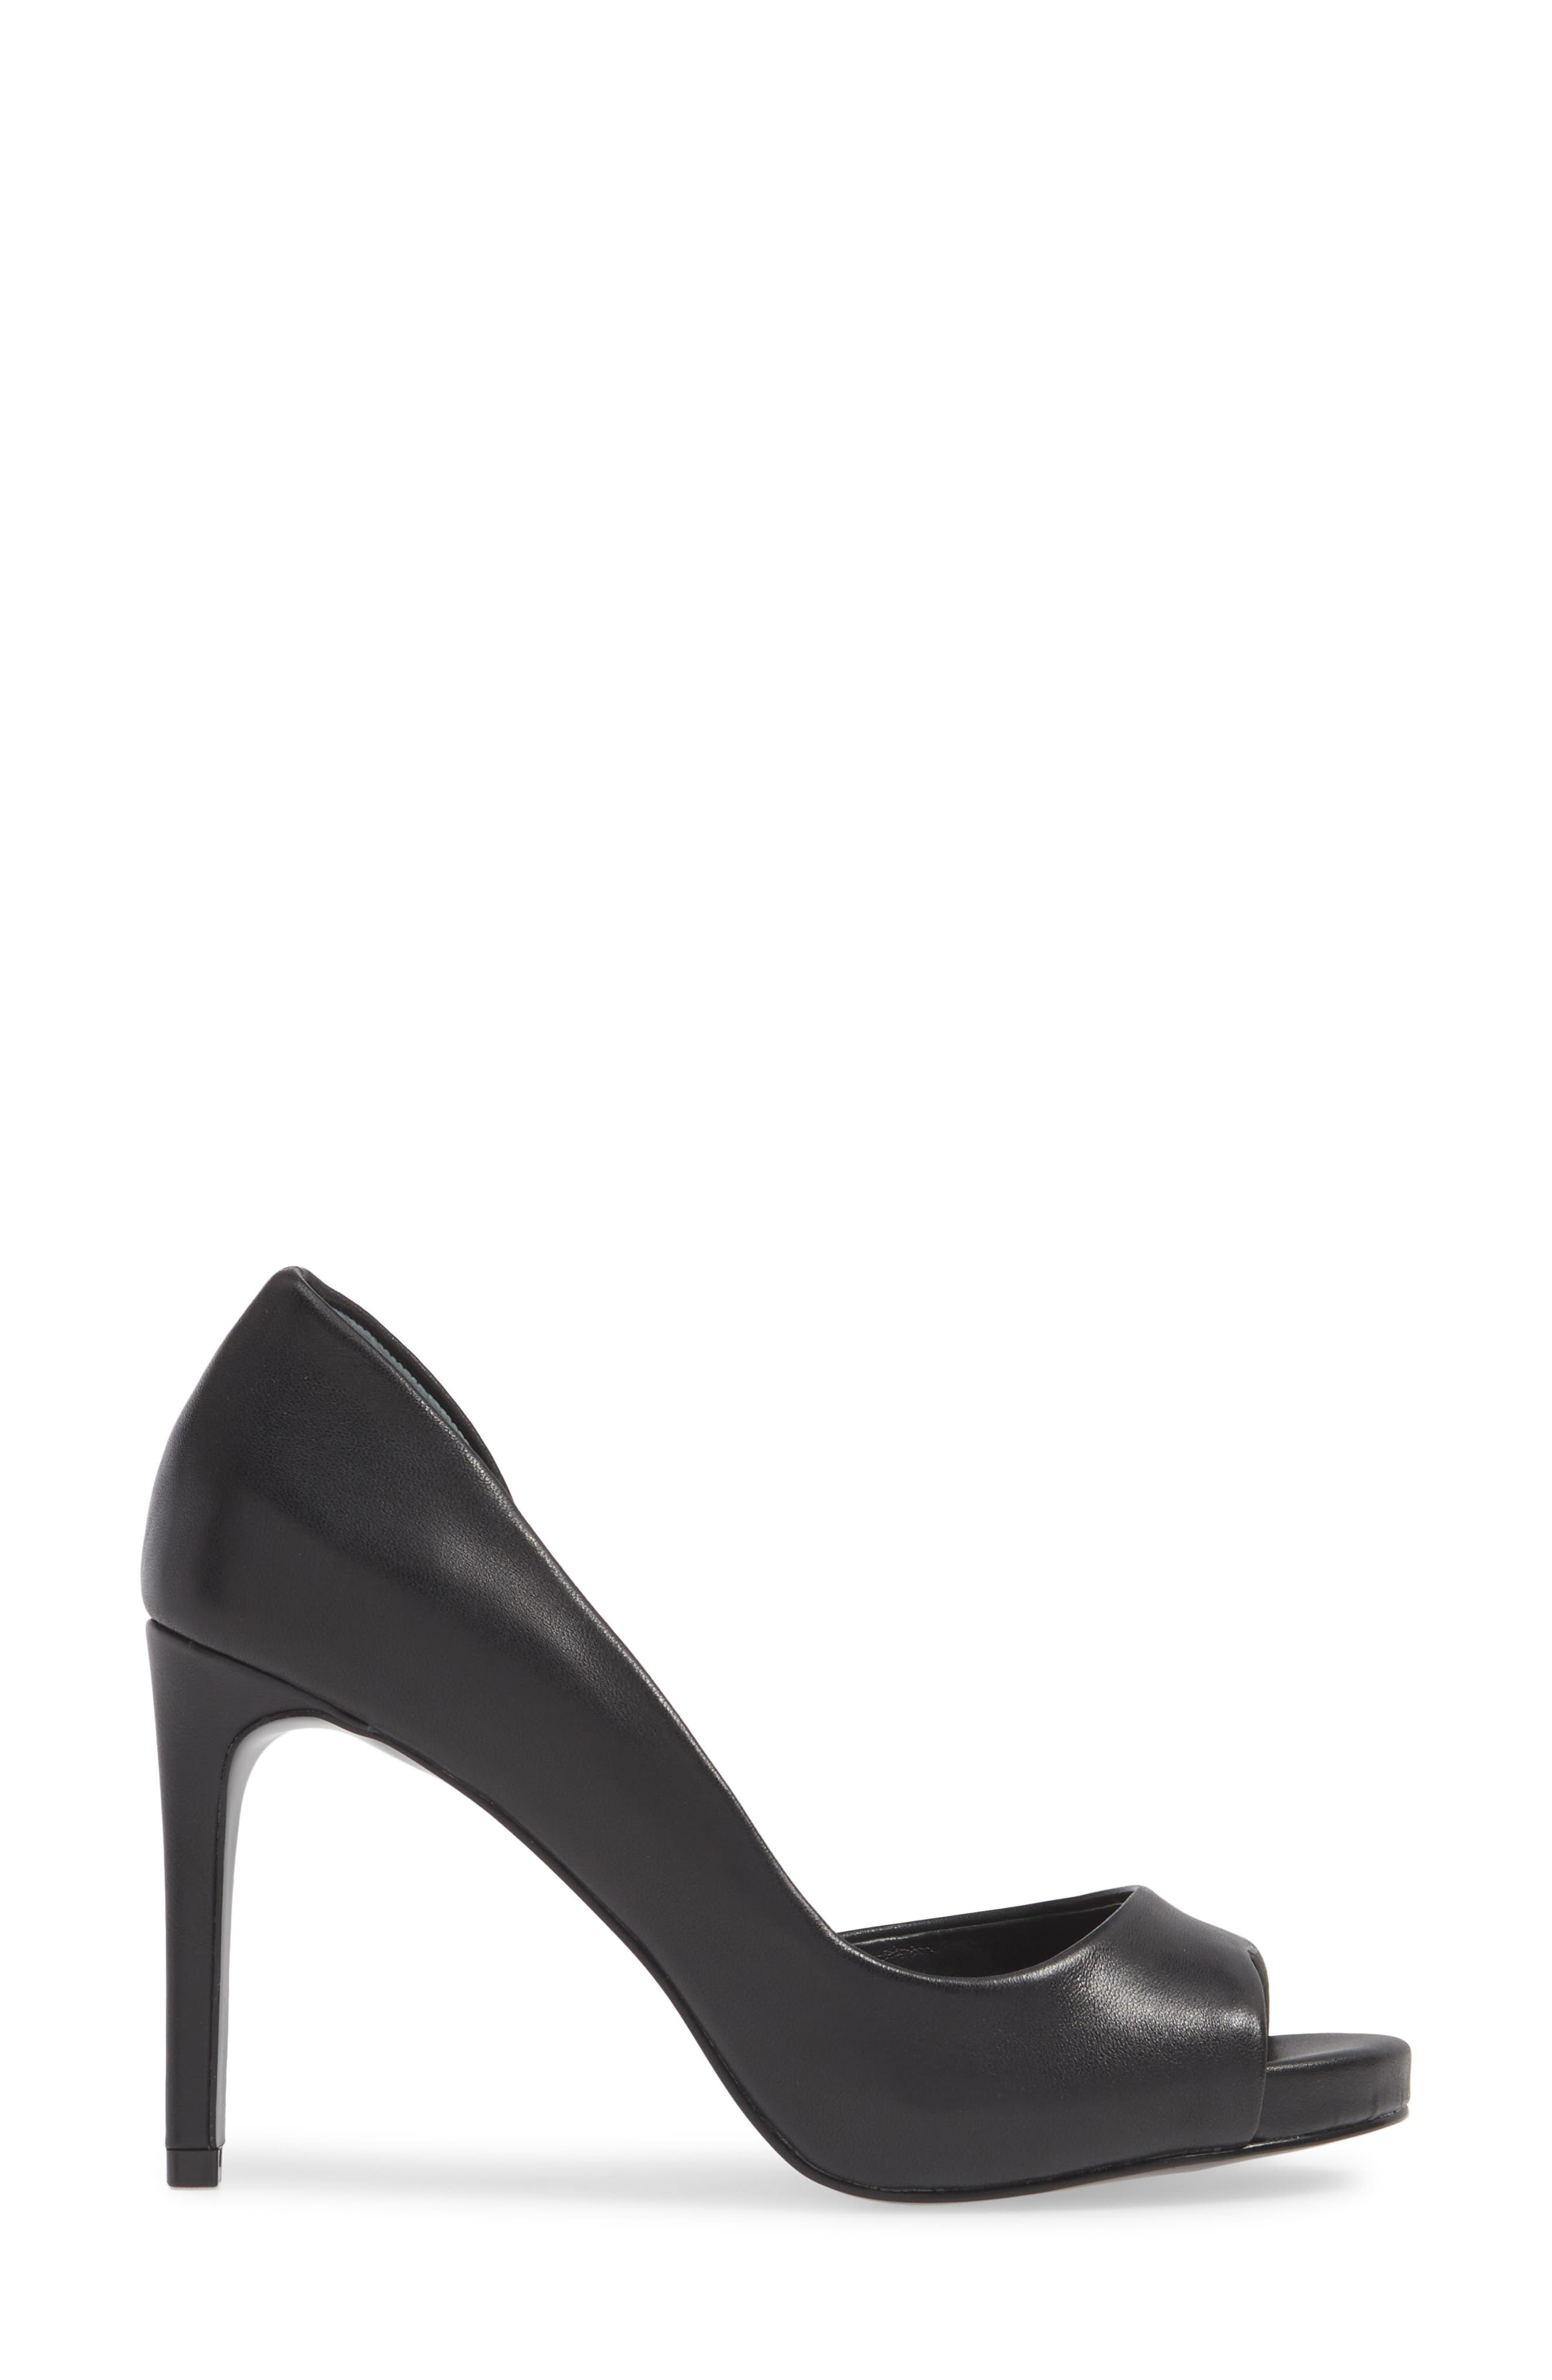 CHARLES BY CHARLES DAVID, Chess Open Toe Pump, Alternate thumbnail 3, color, BLACK LEATHER